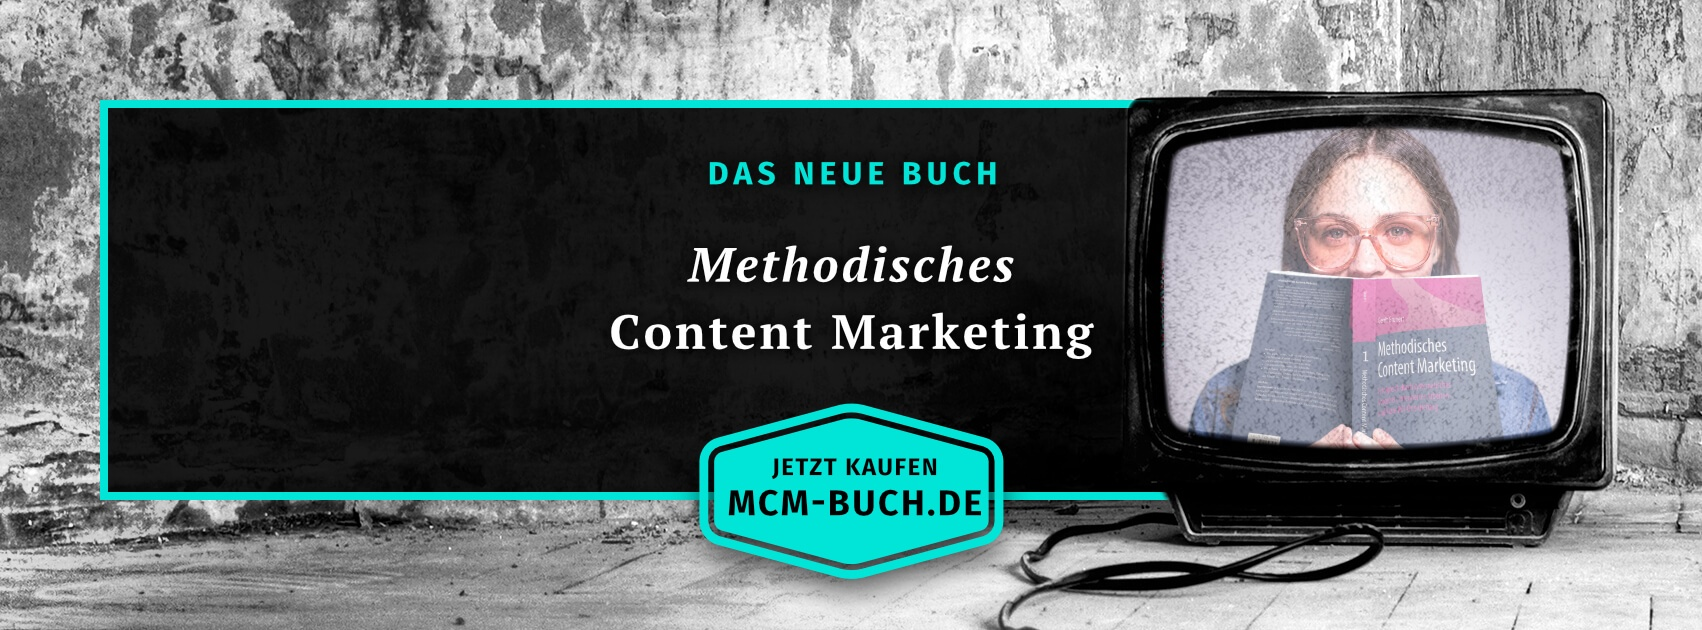 "Buch ""Methodisches Content Marketing"" von Crispy Content"